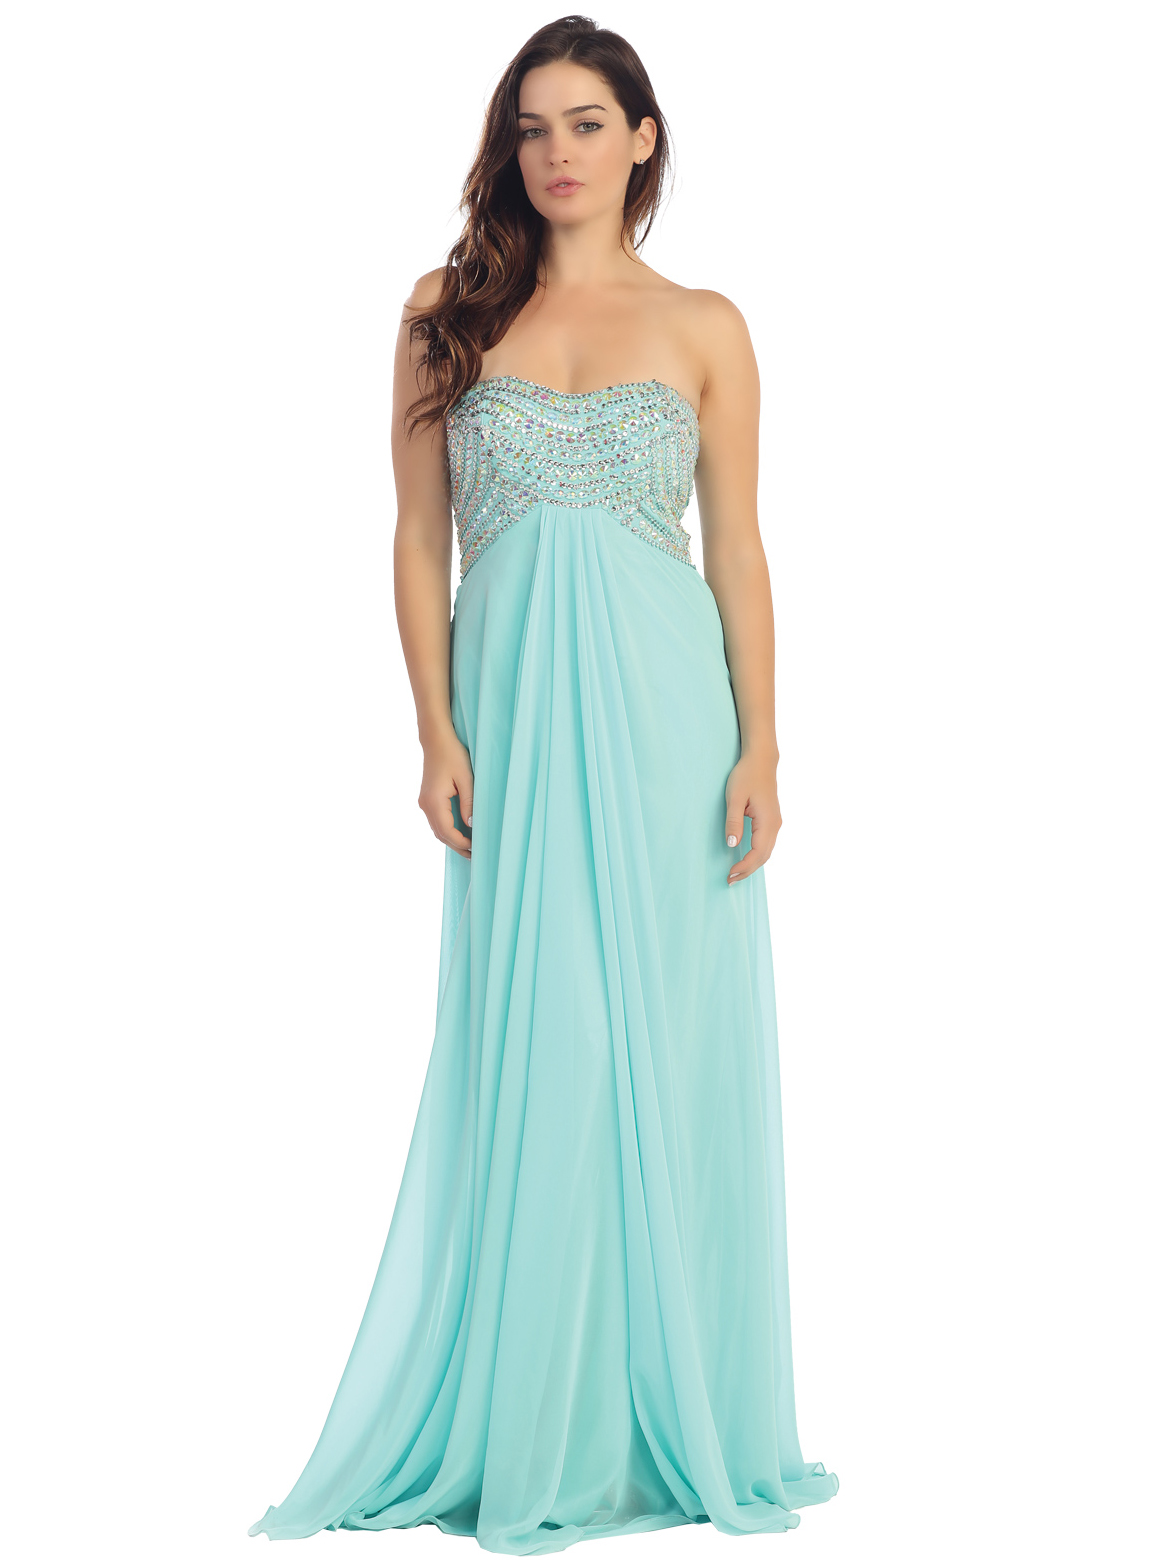 Empire Waist Strapless Embellished Bodice Prom Dress | Sung Boutique ...